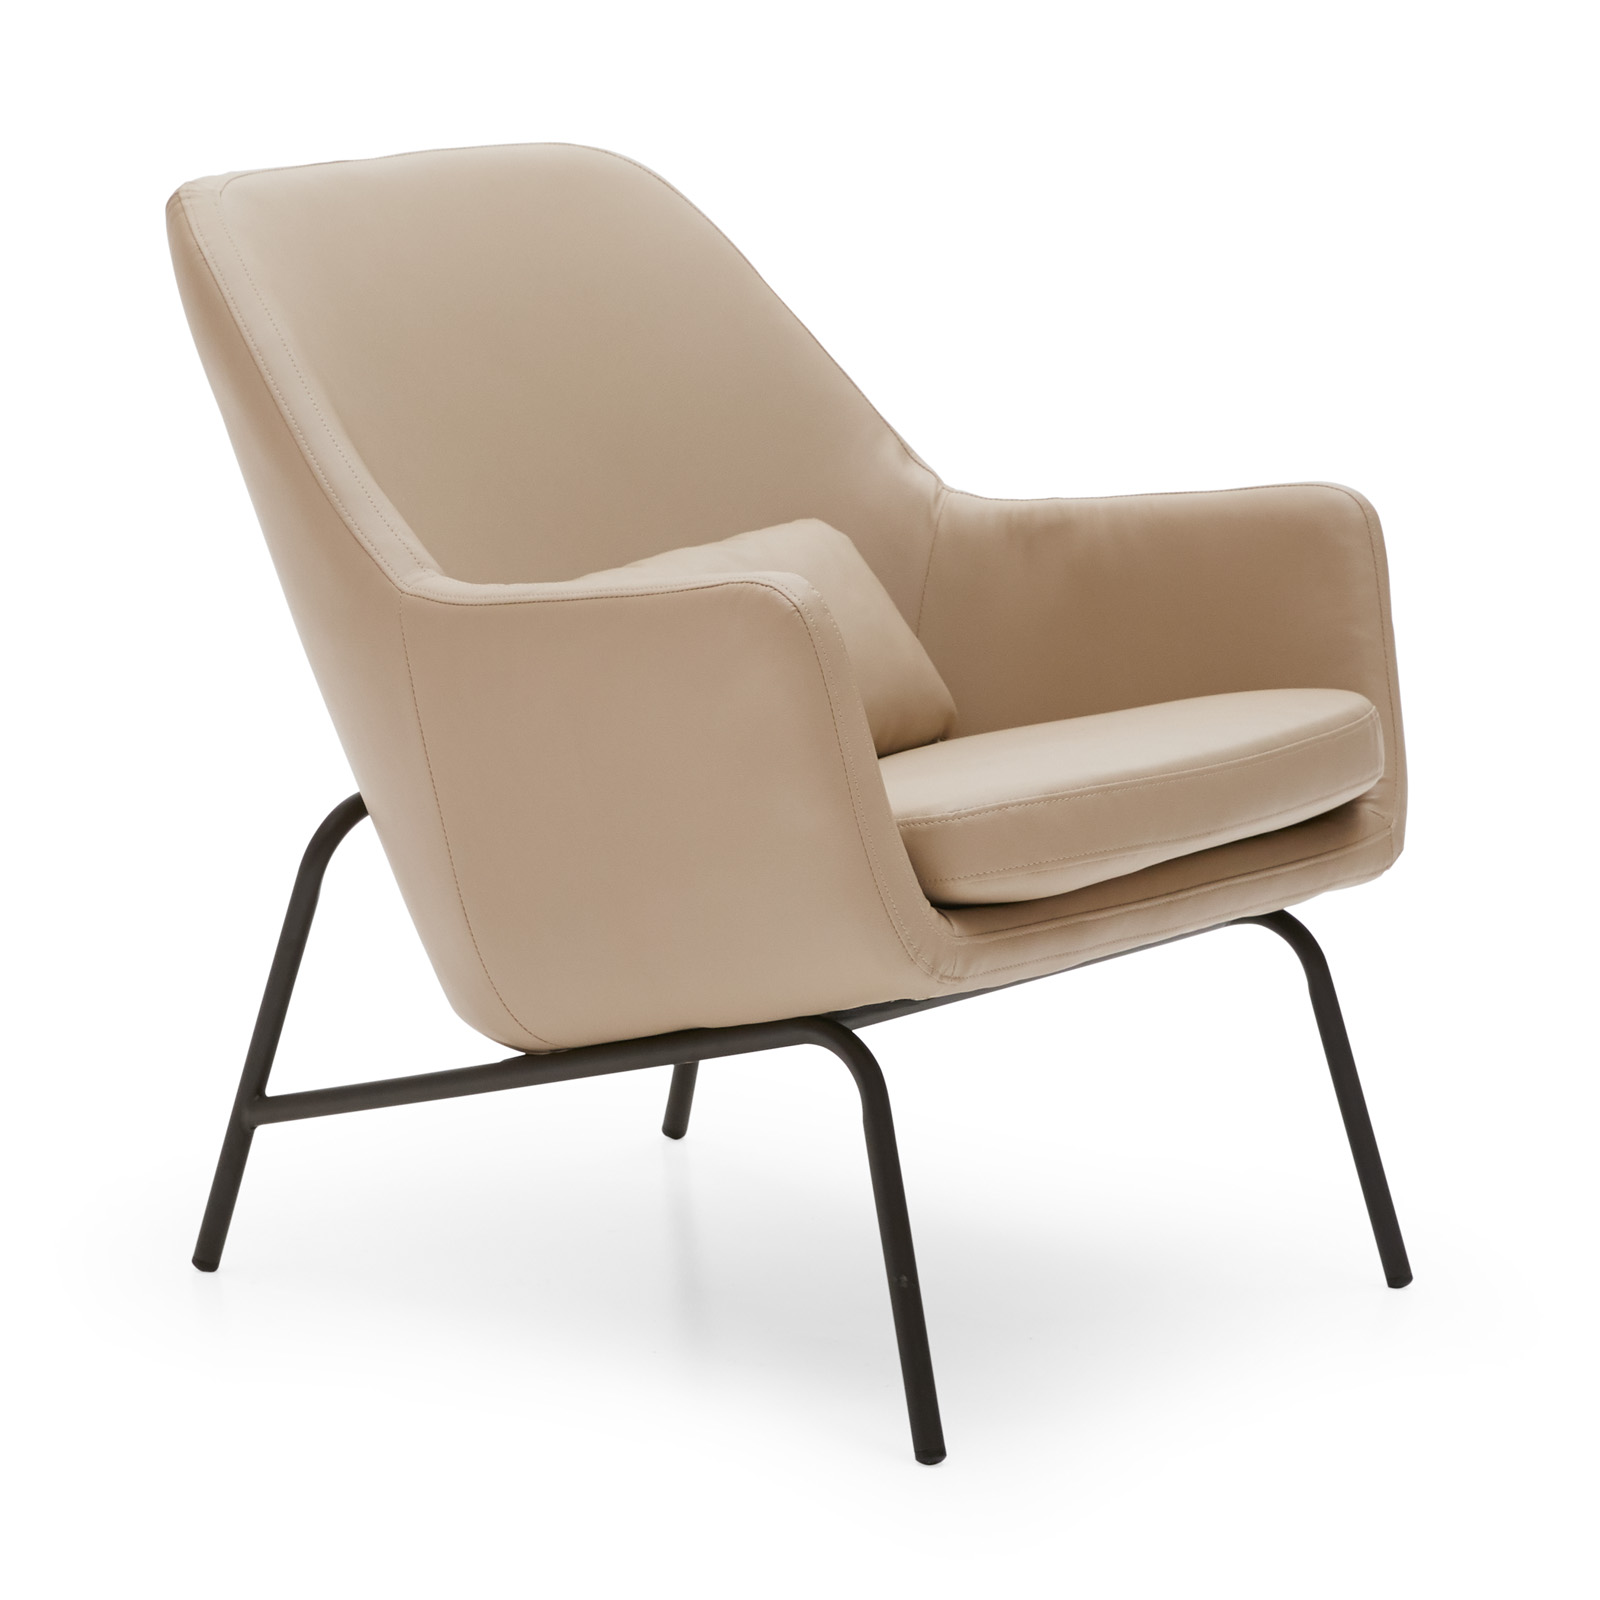 MoDRN Sandpiper Upholstered Lounge Chair